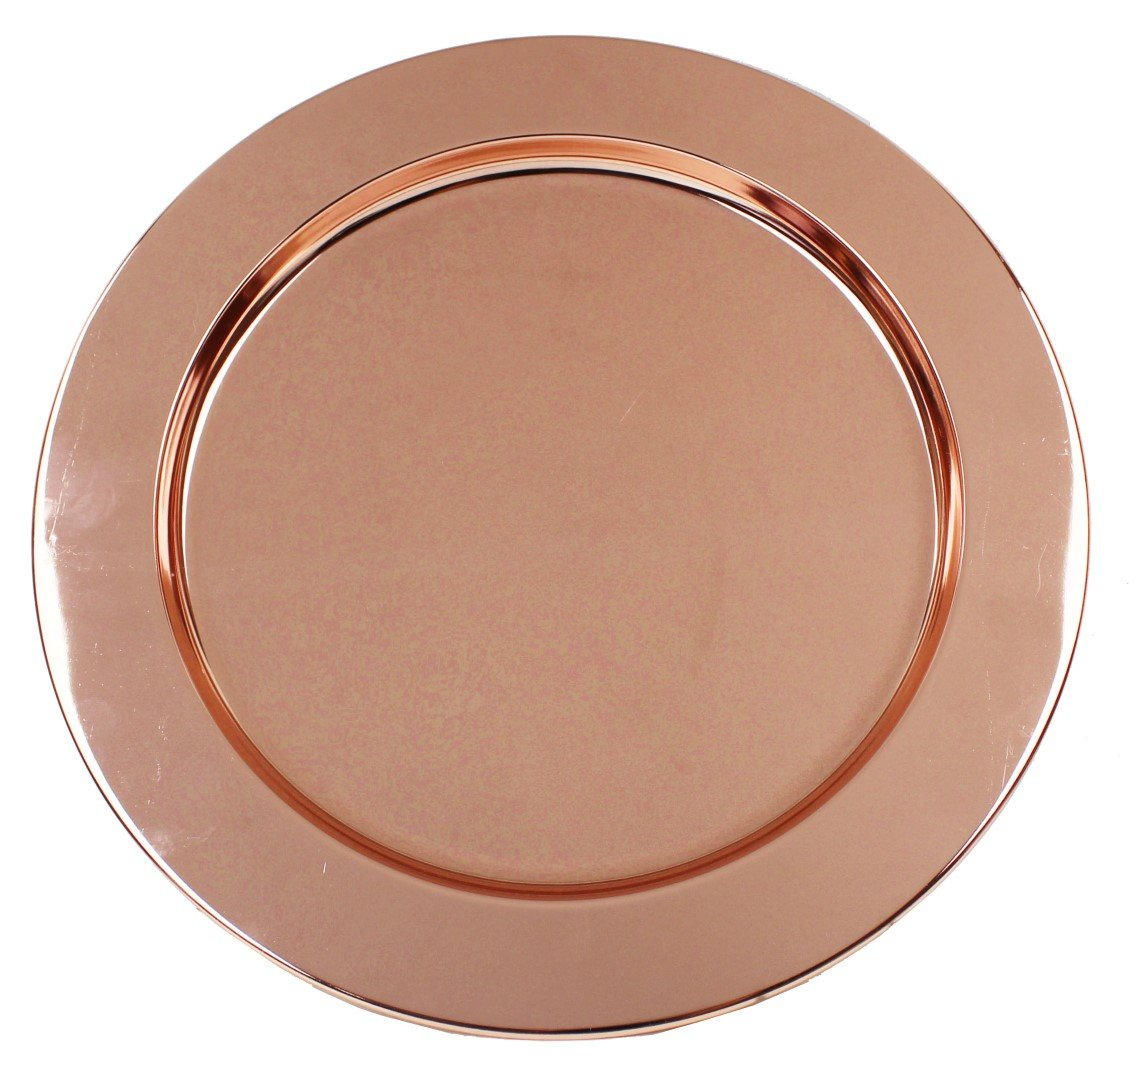 Ms Lovely Rose Gold Stainless Steel Metal Charger Plates - Set of 4-13 inch - Copper Tone